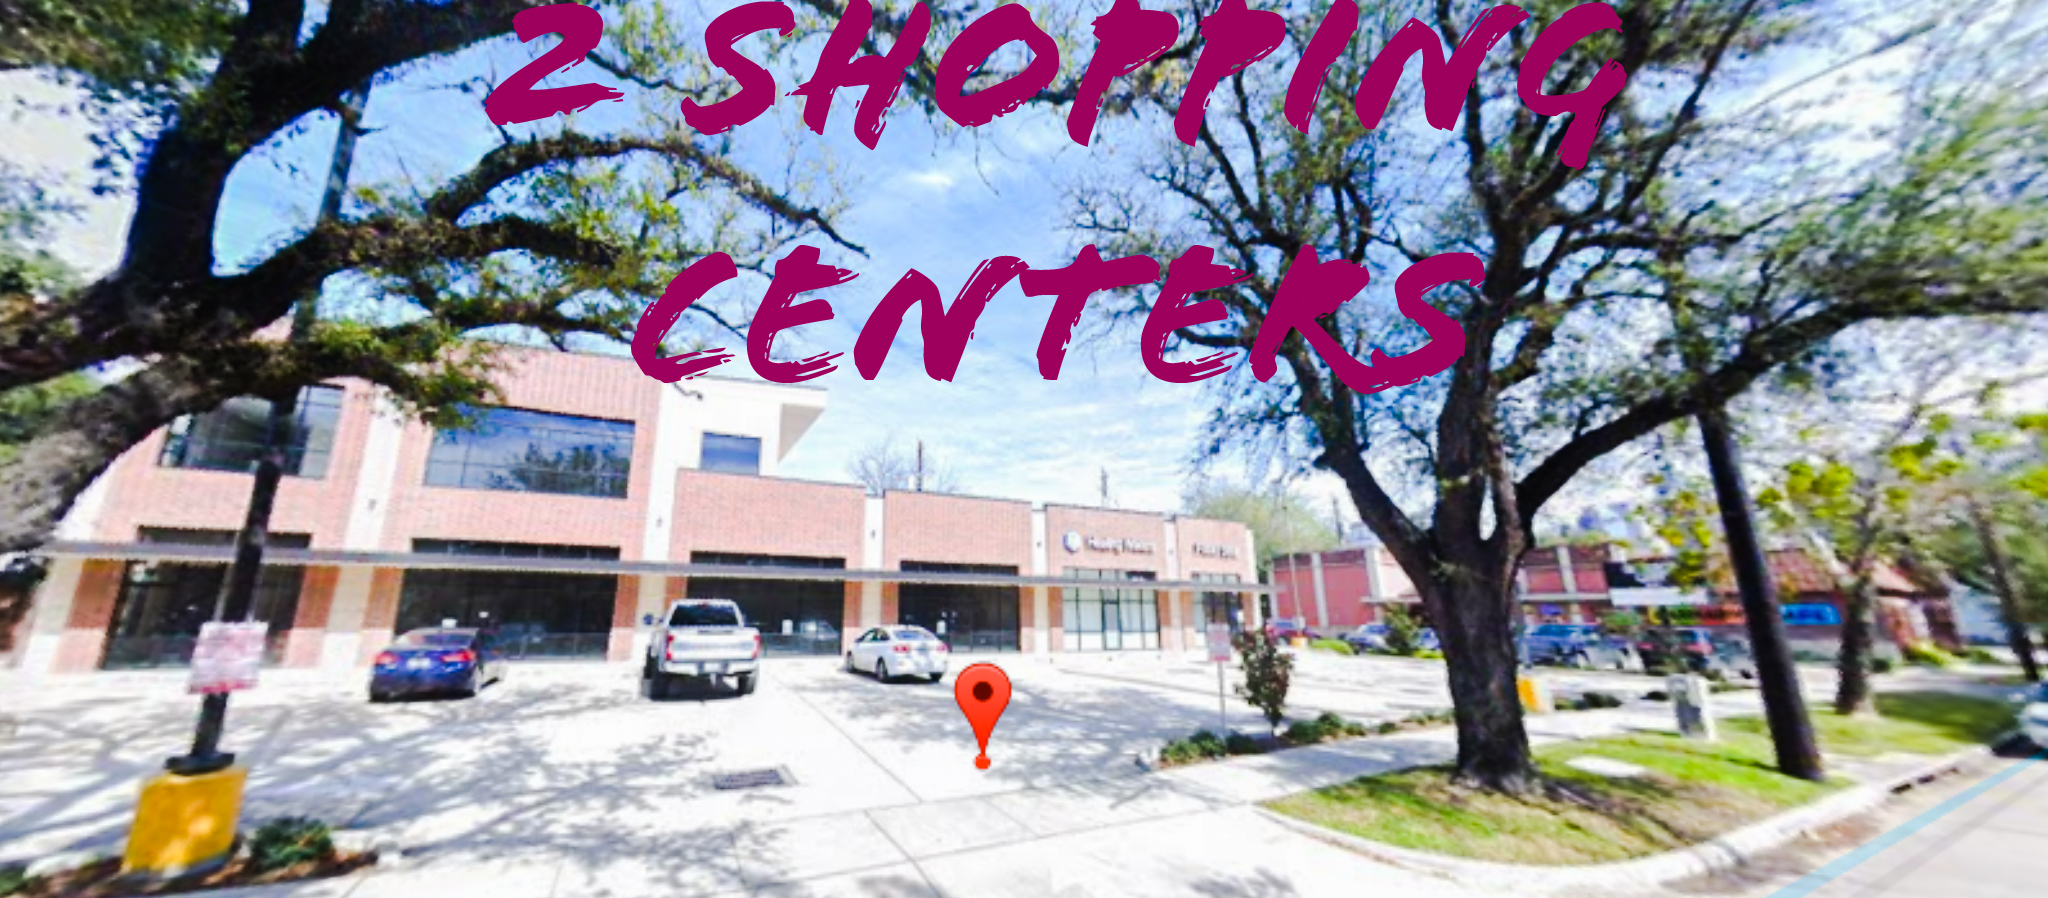 Shopping Center ForSale in Wealthiest Neighborhood of USA – Houston River Oaks